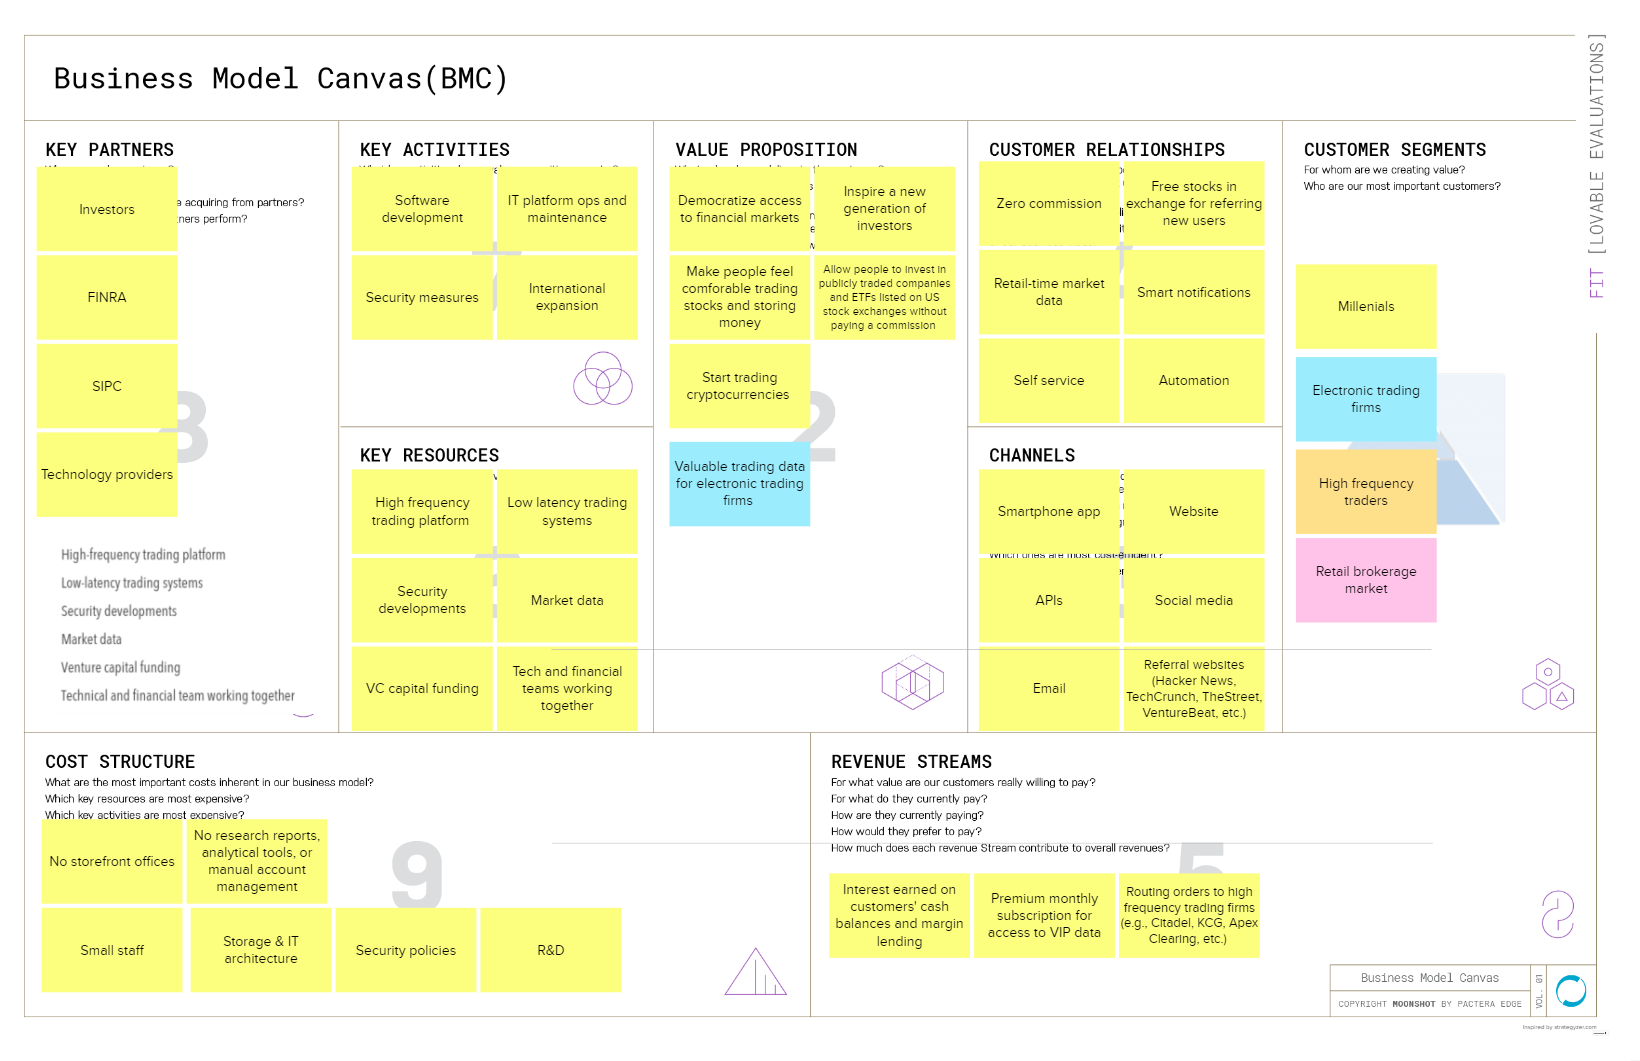 Completed Business Model Canvas (BMC)